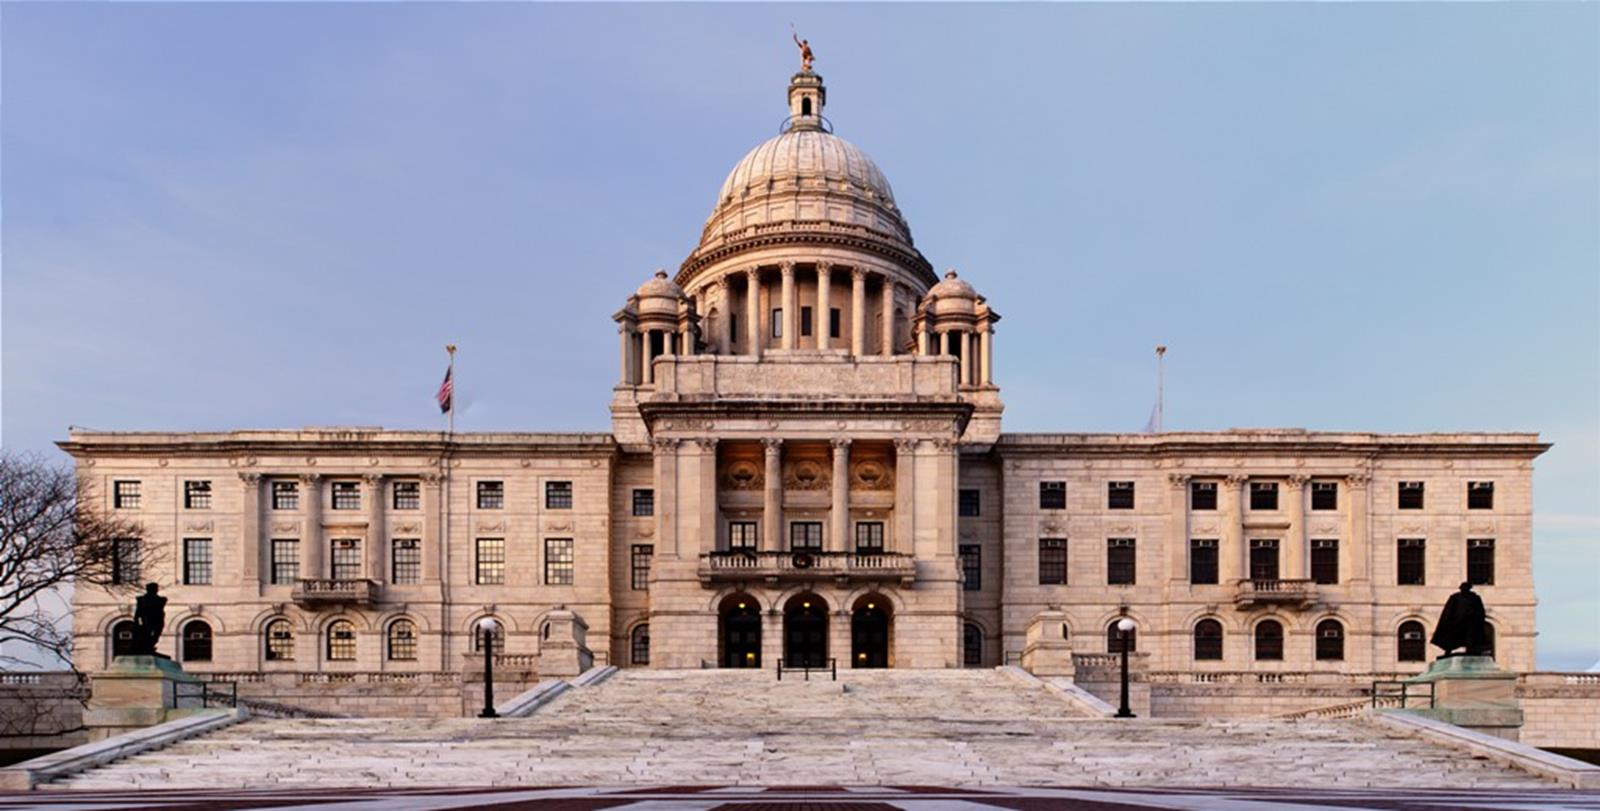 Rhode Island State House. Credit: Kumar Appaiah at en.wikipedia.